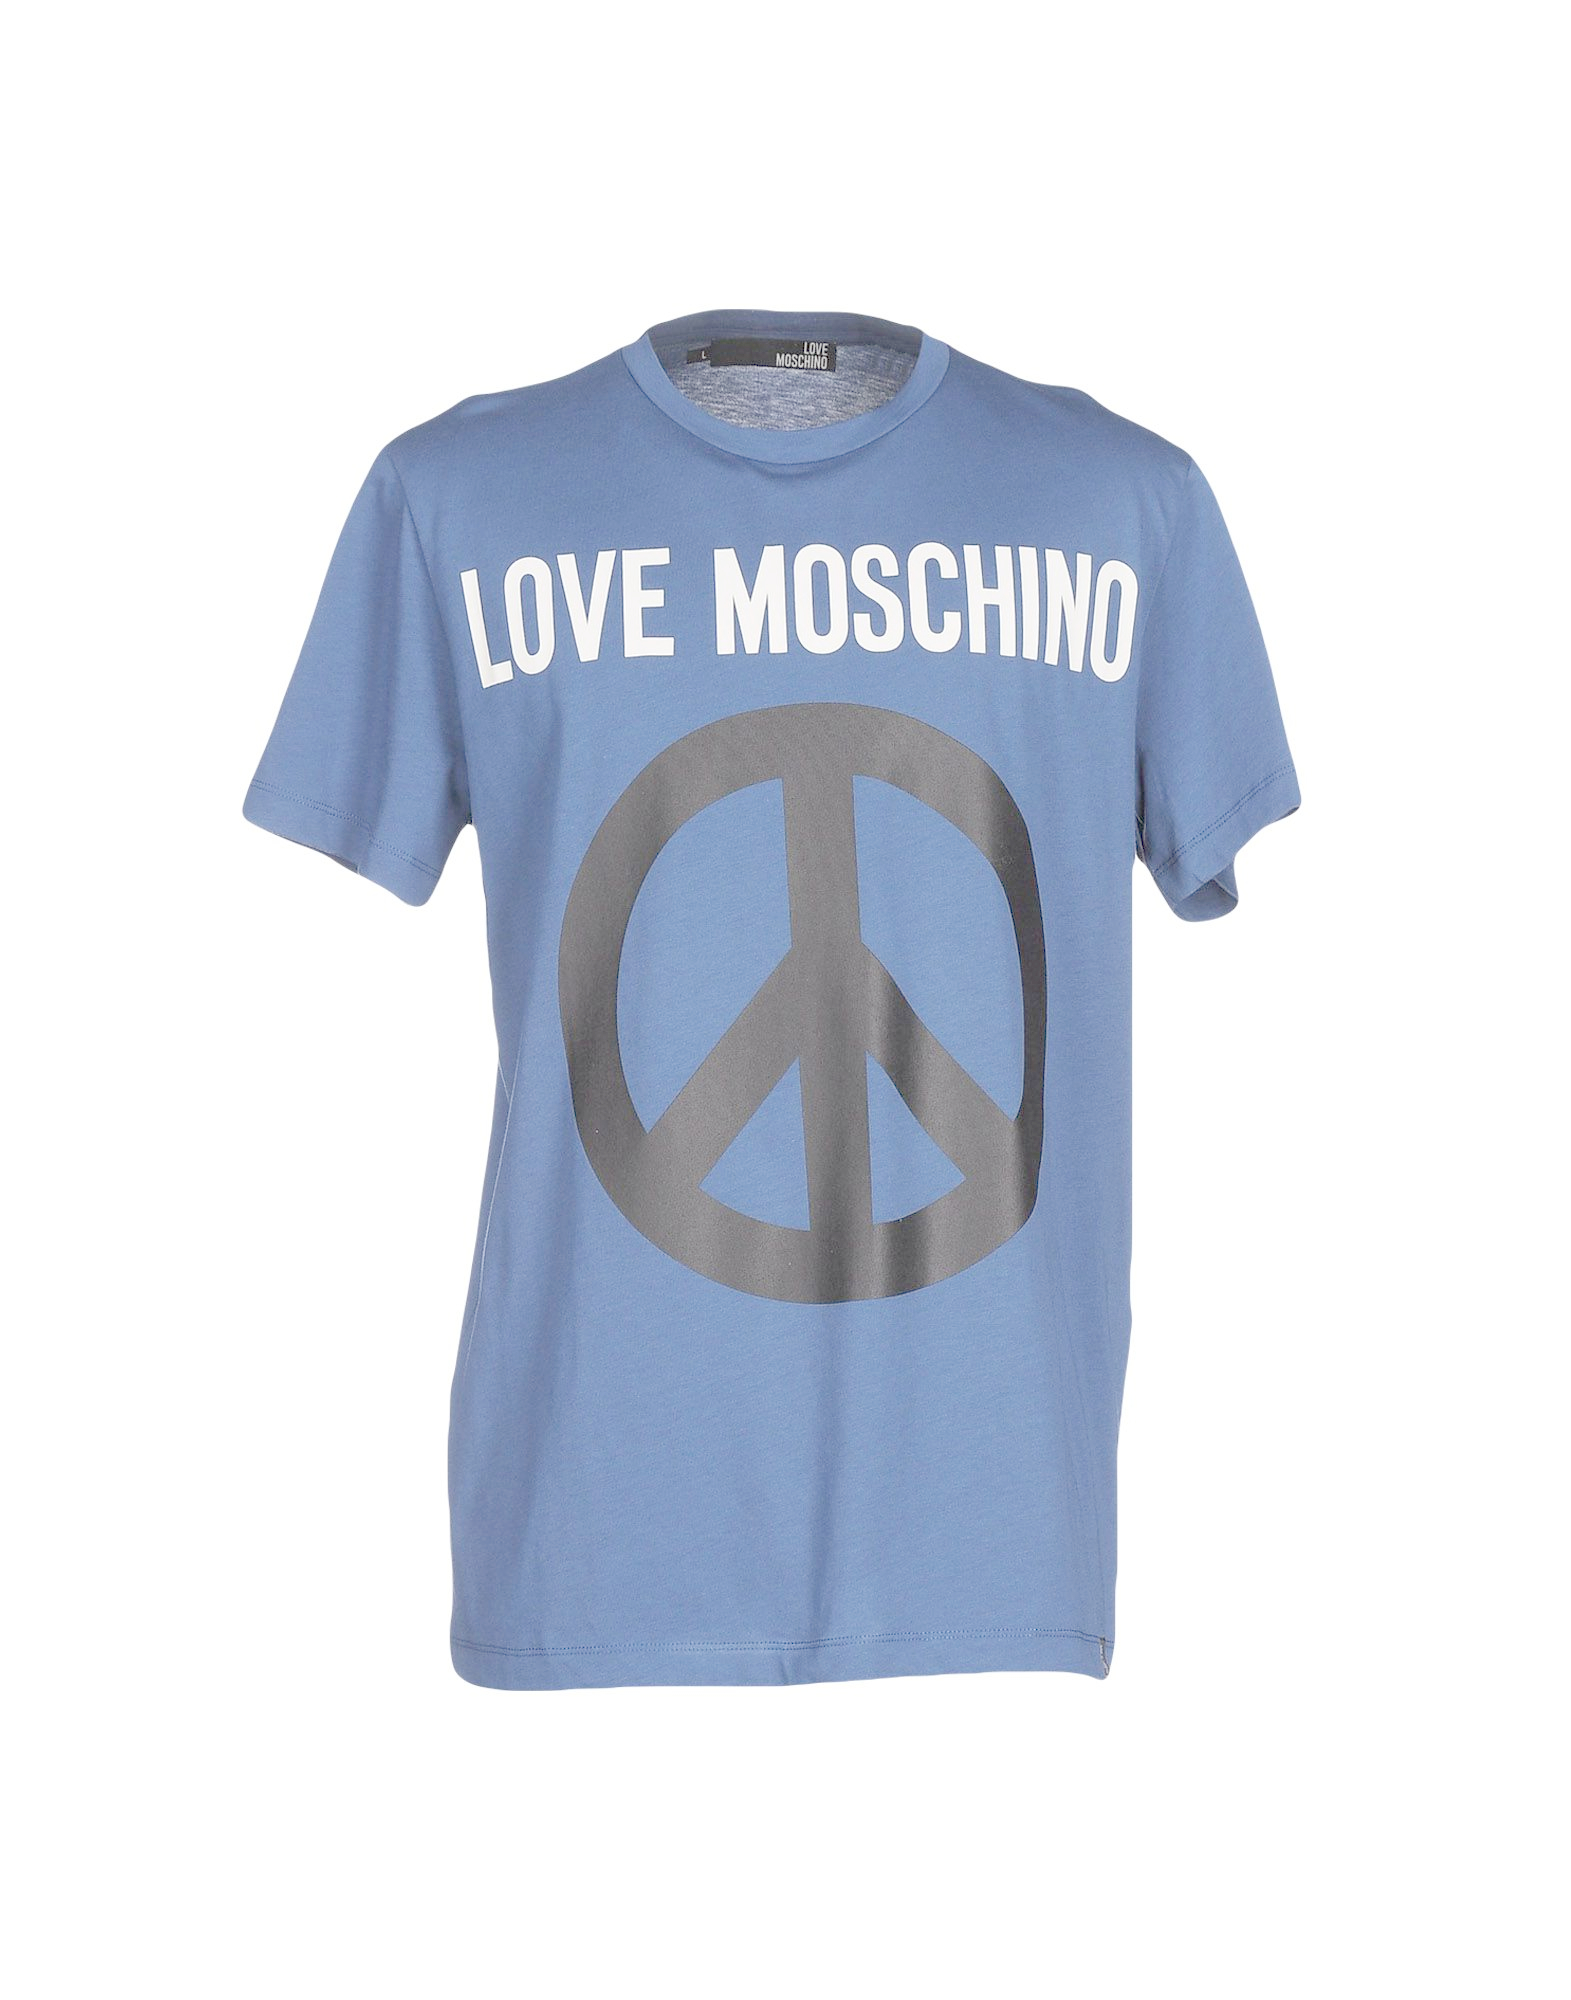 love moschino t shirt in blue for men lyst. Black Bedroom Furniture Sets. Home Design Ideas